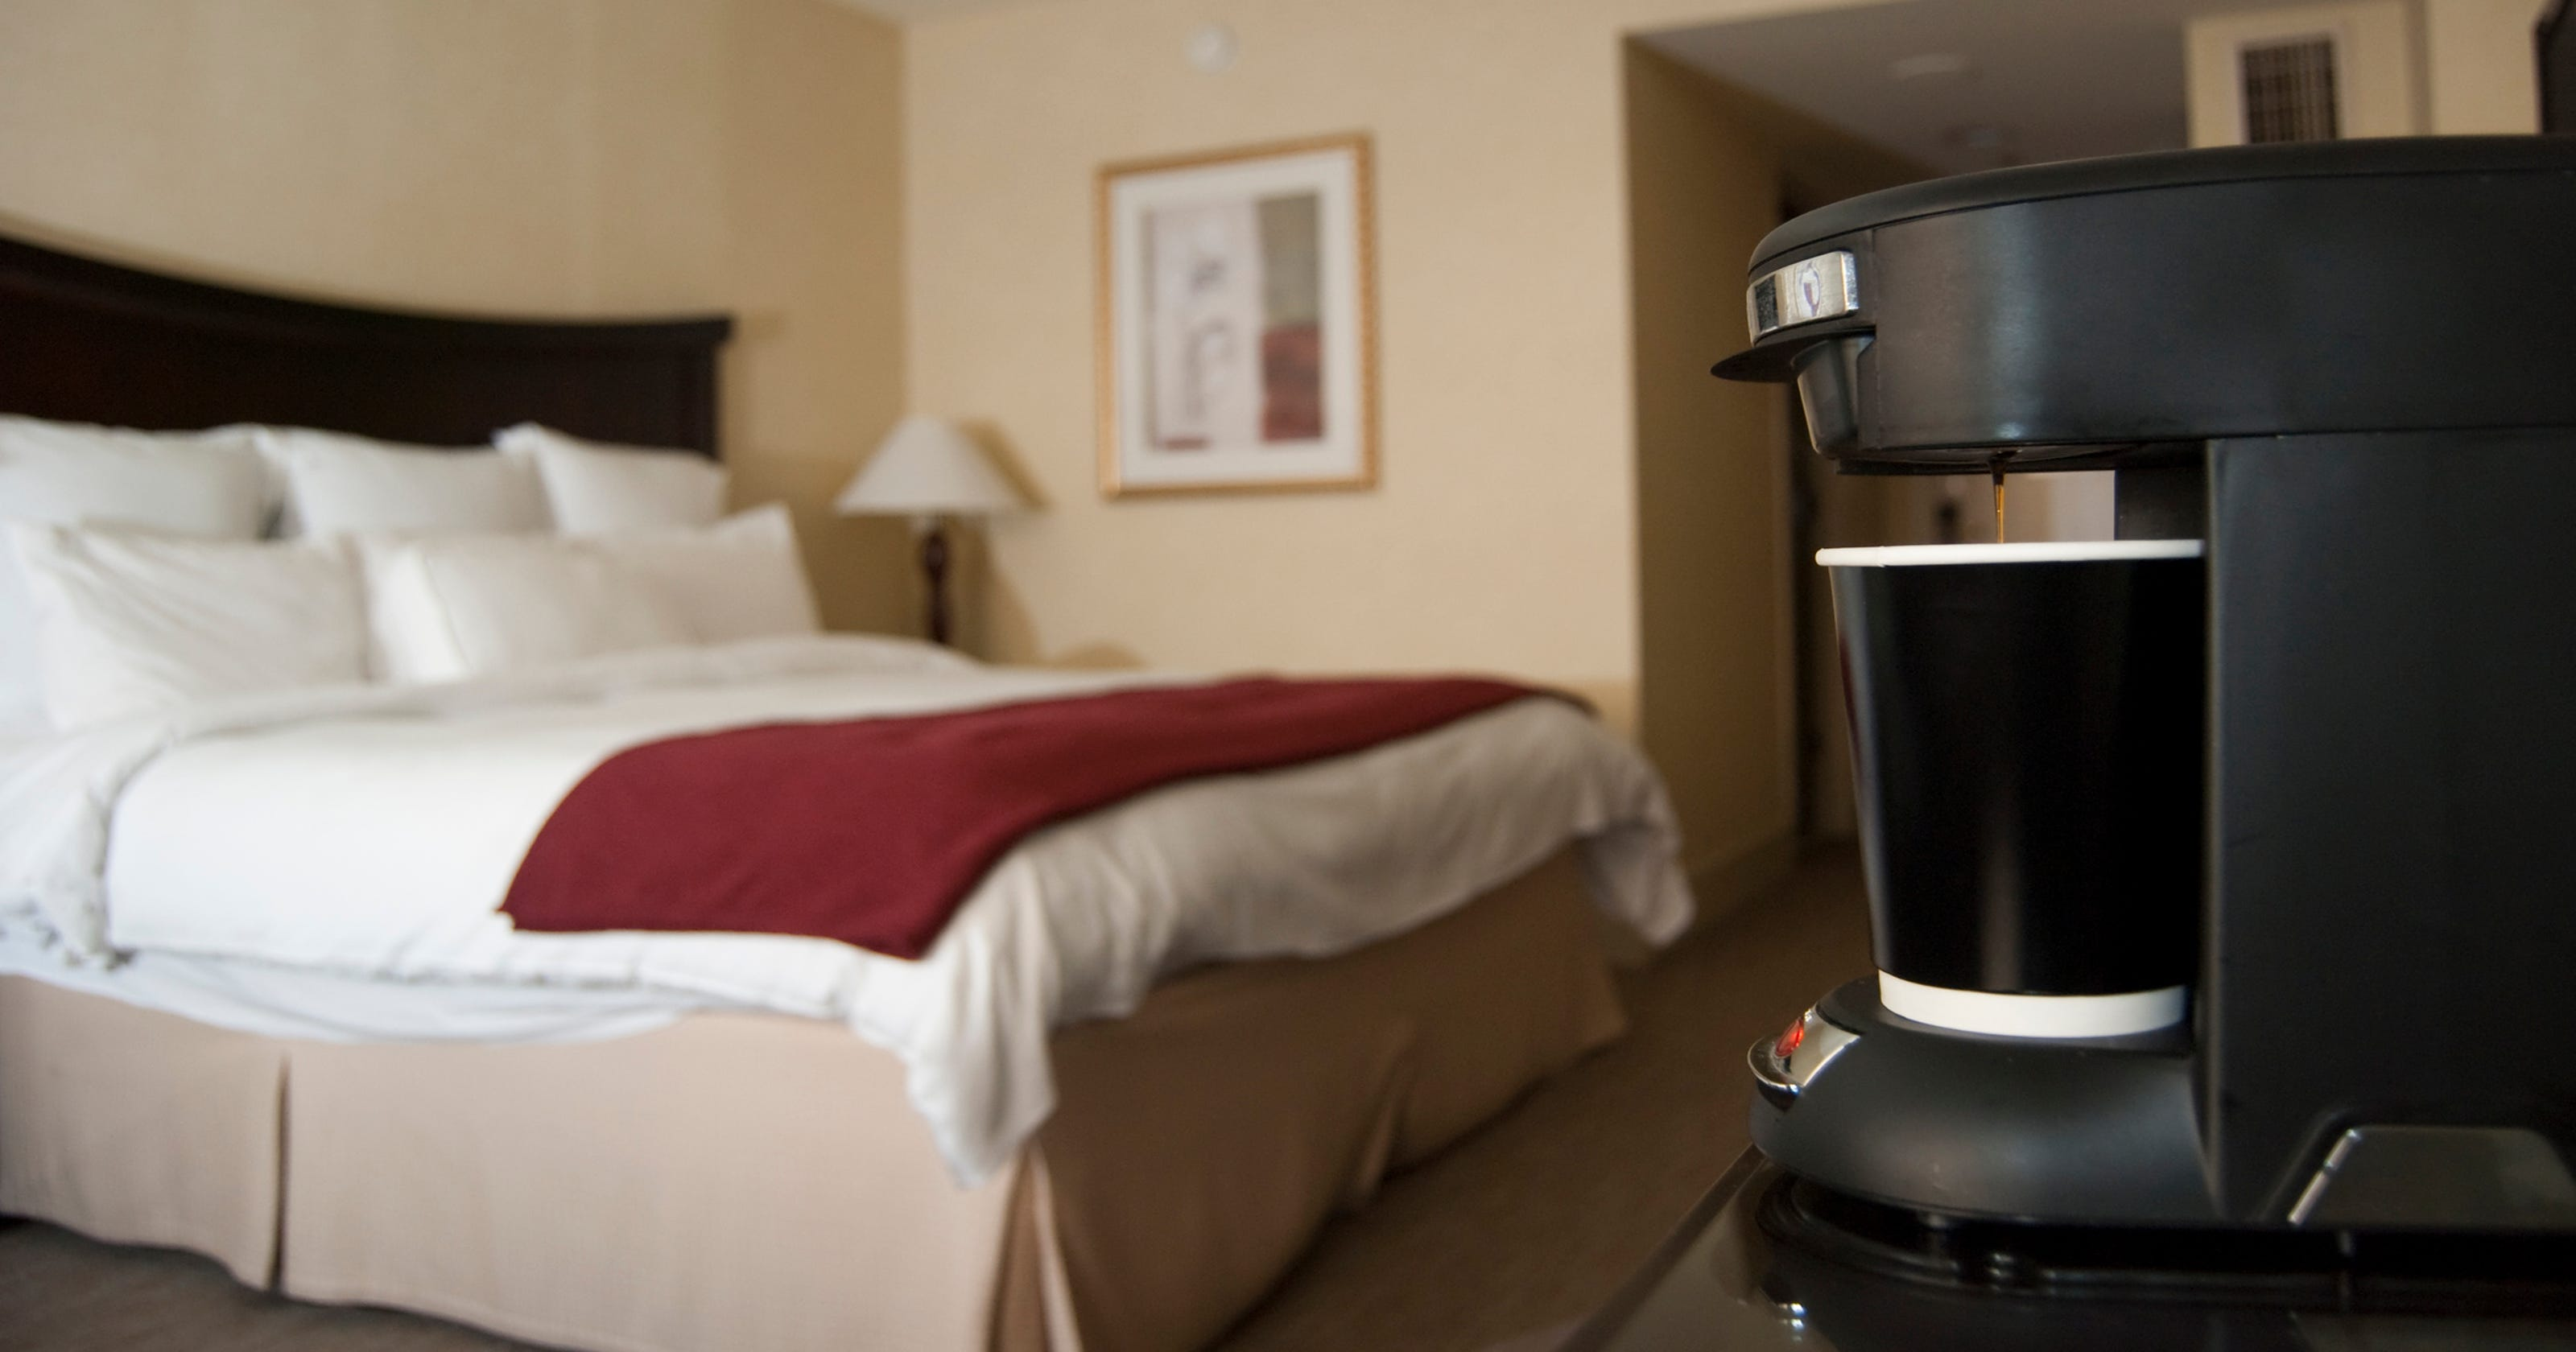 Why is hotel coffee so awful?